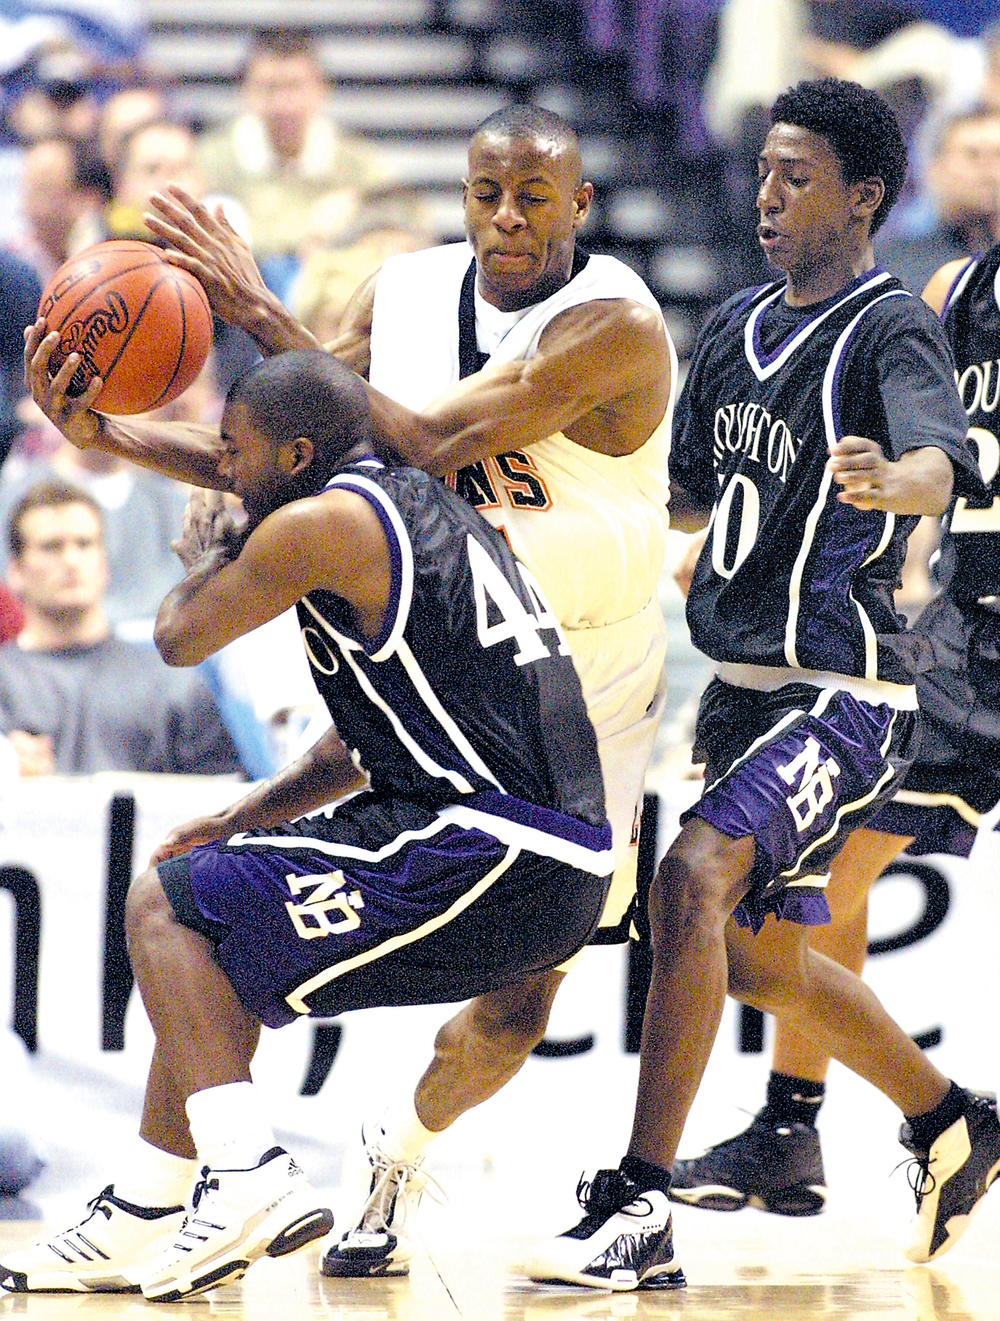 Lanphier's Andre Iguodala crashes into Broughton'w Mike Roper, 44, as Jamaal Eatmon closes in during the Shop'n Save KMOX Shootout at the Savvis Center in St. Louis Dec. 7, 2001. Ted Schurter/The State Journal-Register